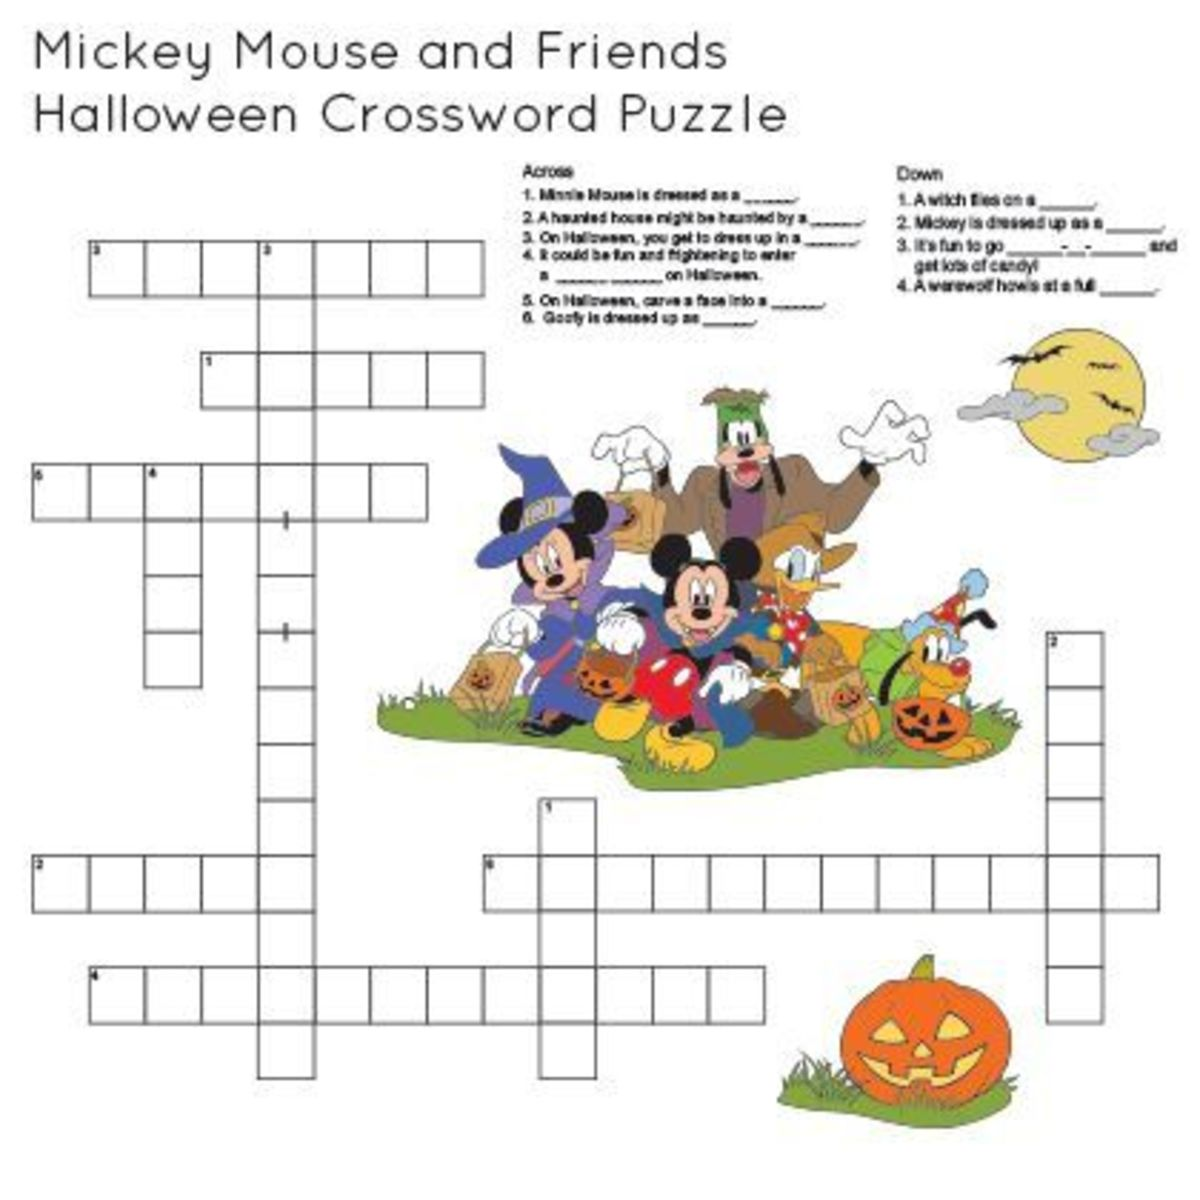 Mickey Mouse and Friends Halloween Crossword Puzzle Game